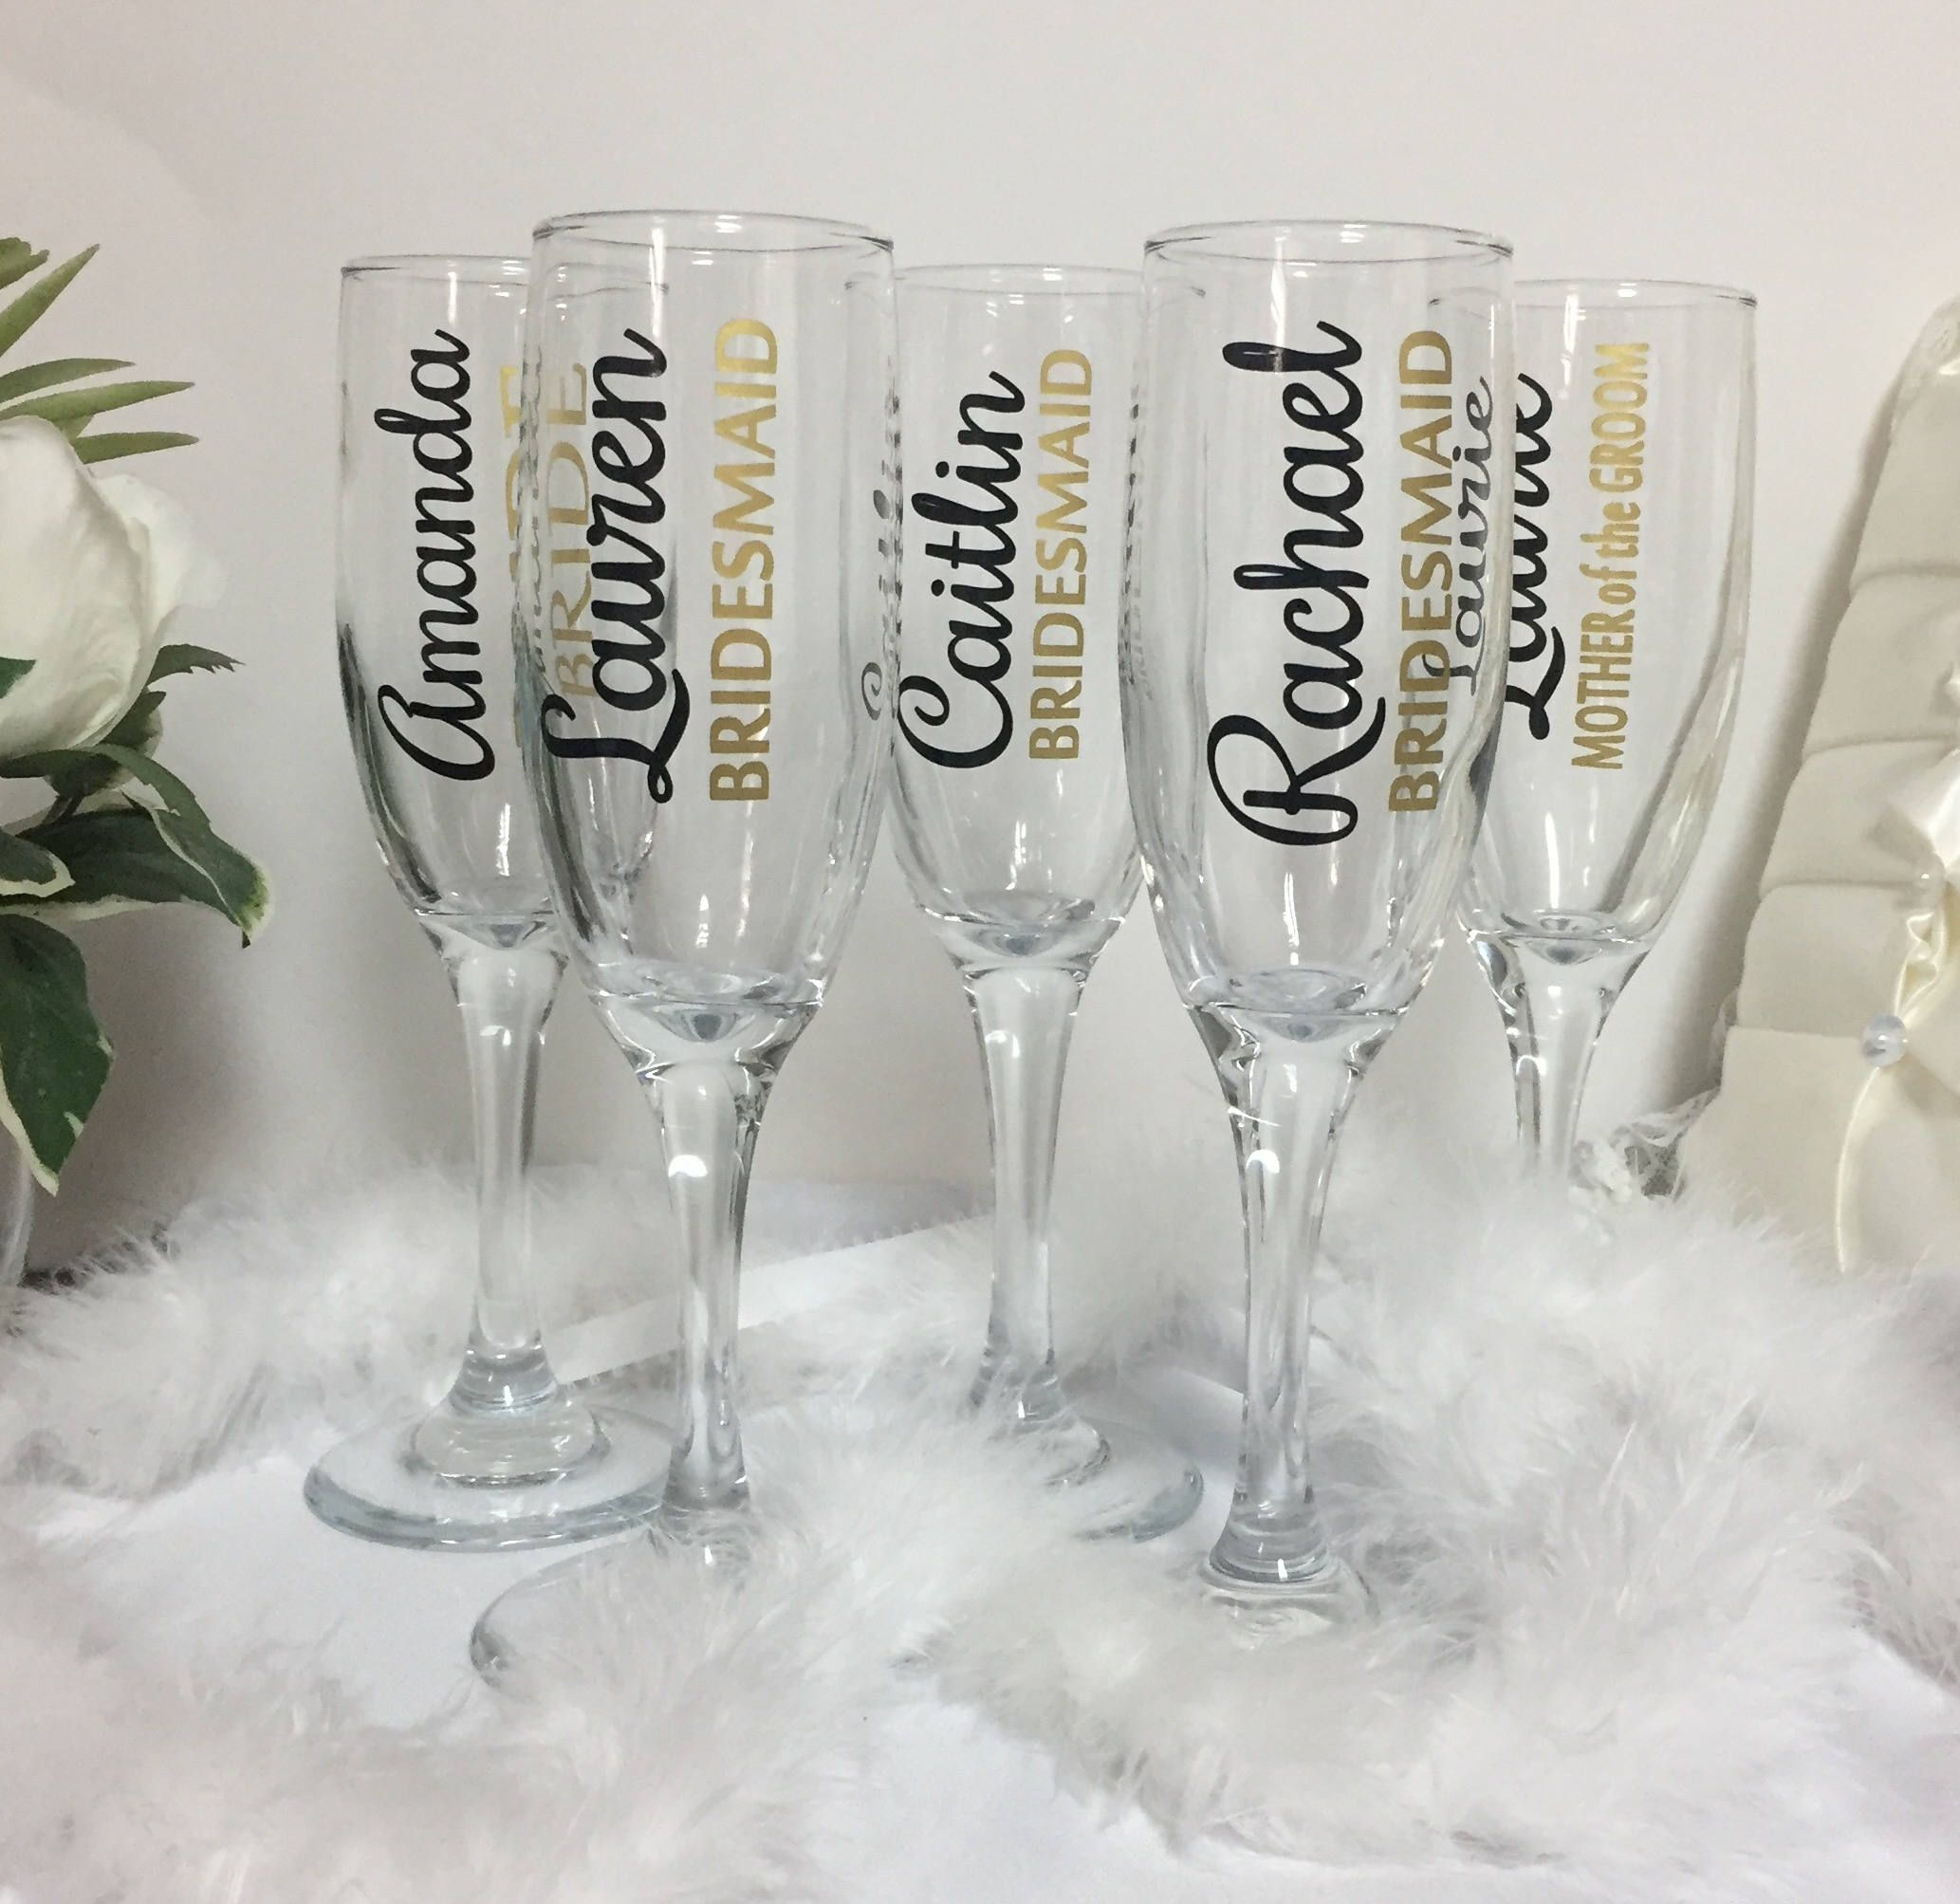 Personalized Champagne Flutes Bridesmaids Champagne Glasses Etsy Personalized Champagne Flutes Bridesmaid Champagne Glasses Wedding Wine Glasses